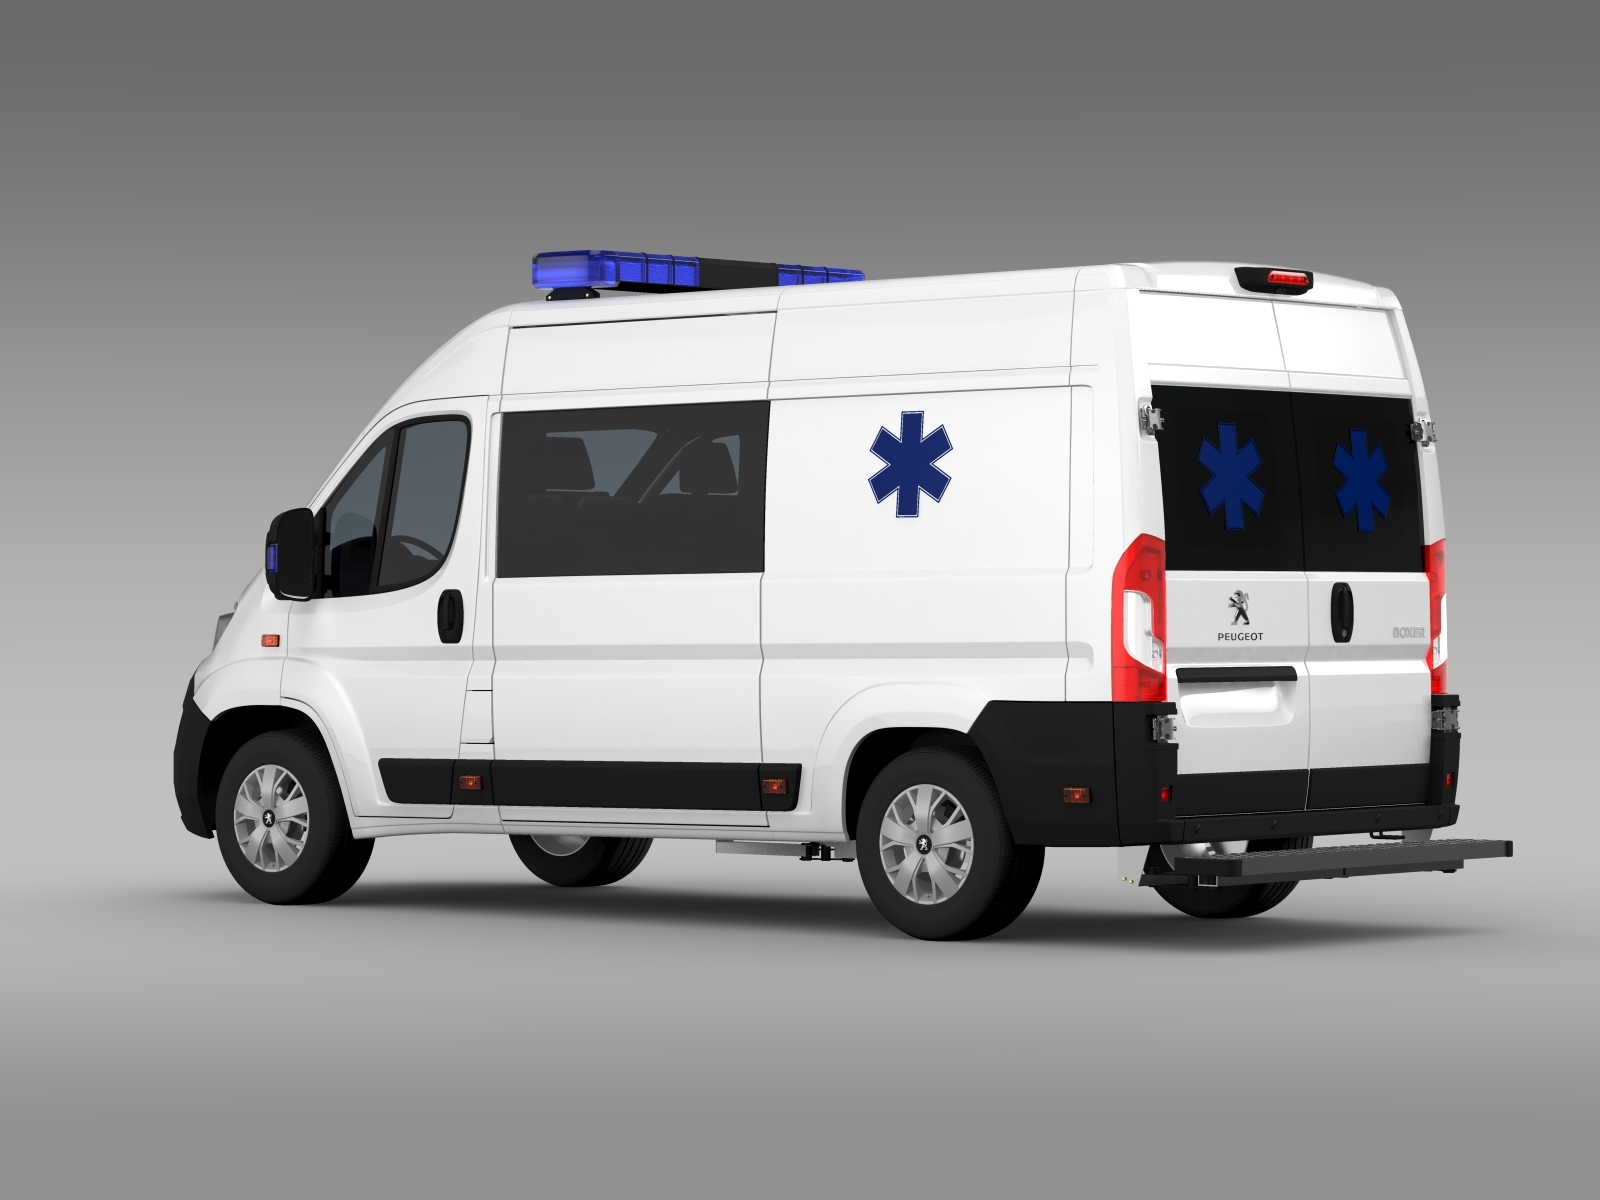 peugeot boxer van ambulance 2015 3d model. Black Bedroom Furniture Sets. Home Design Ideas